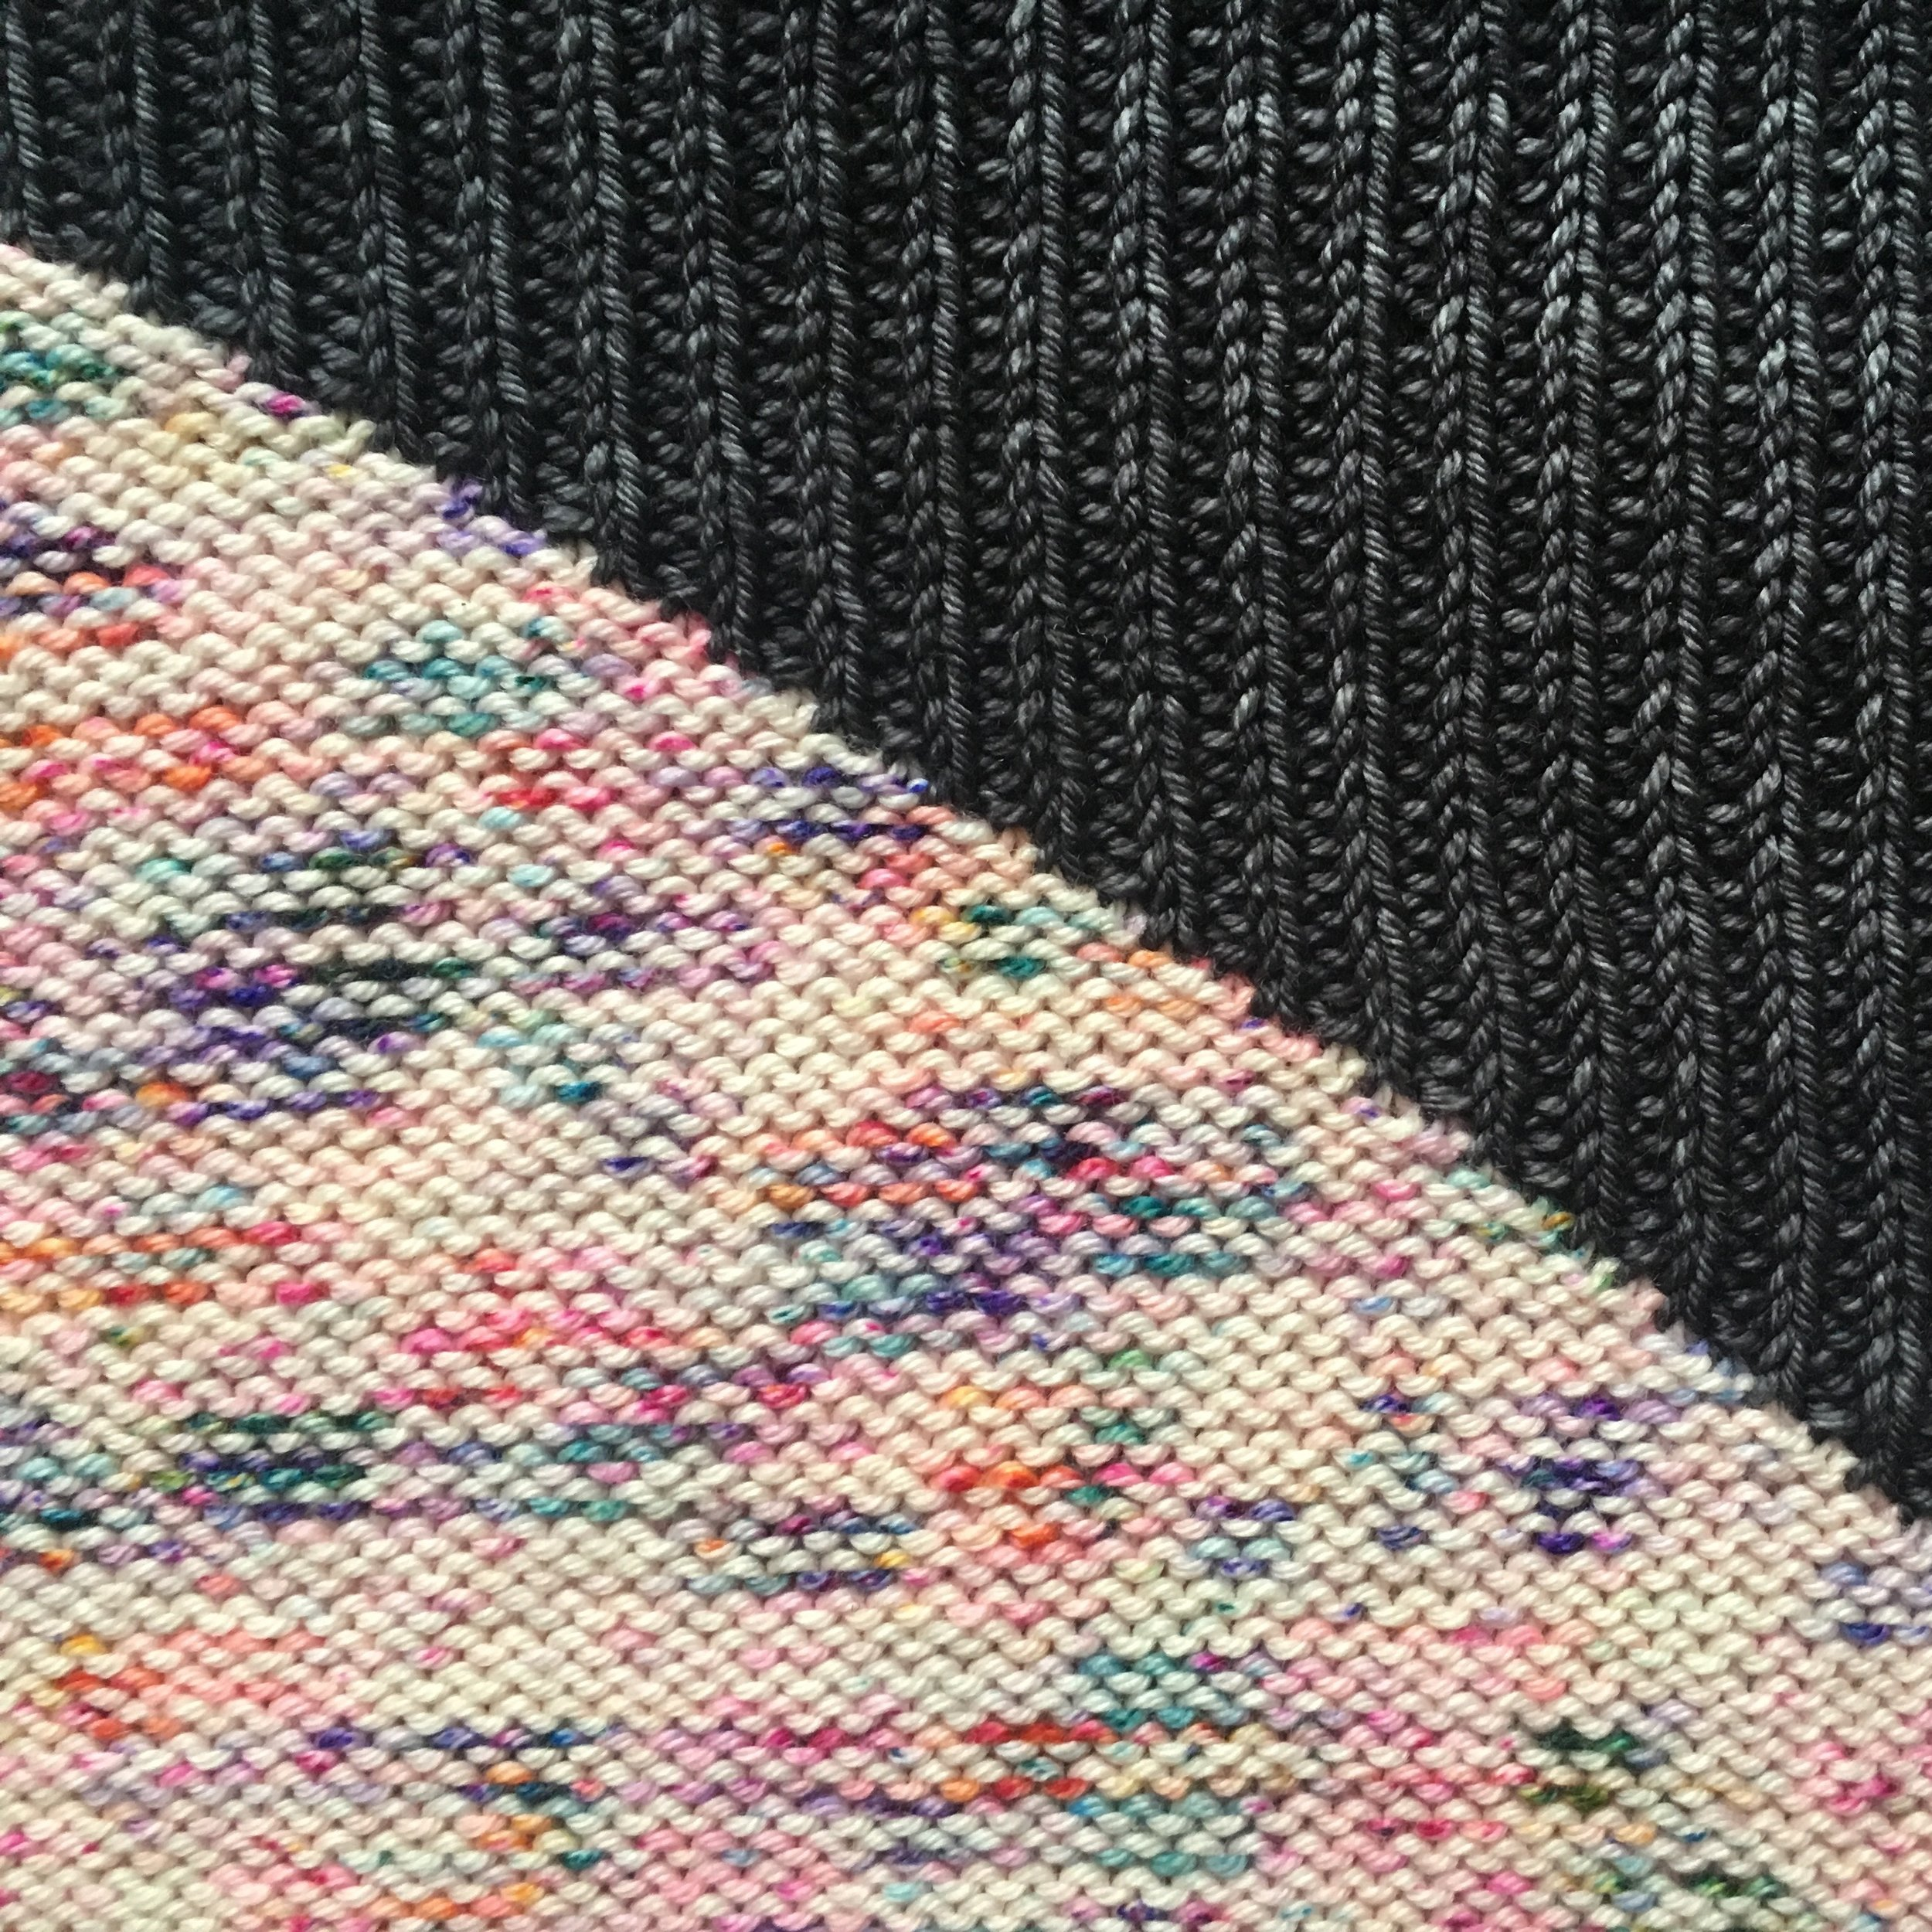 Right side of sweater.